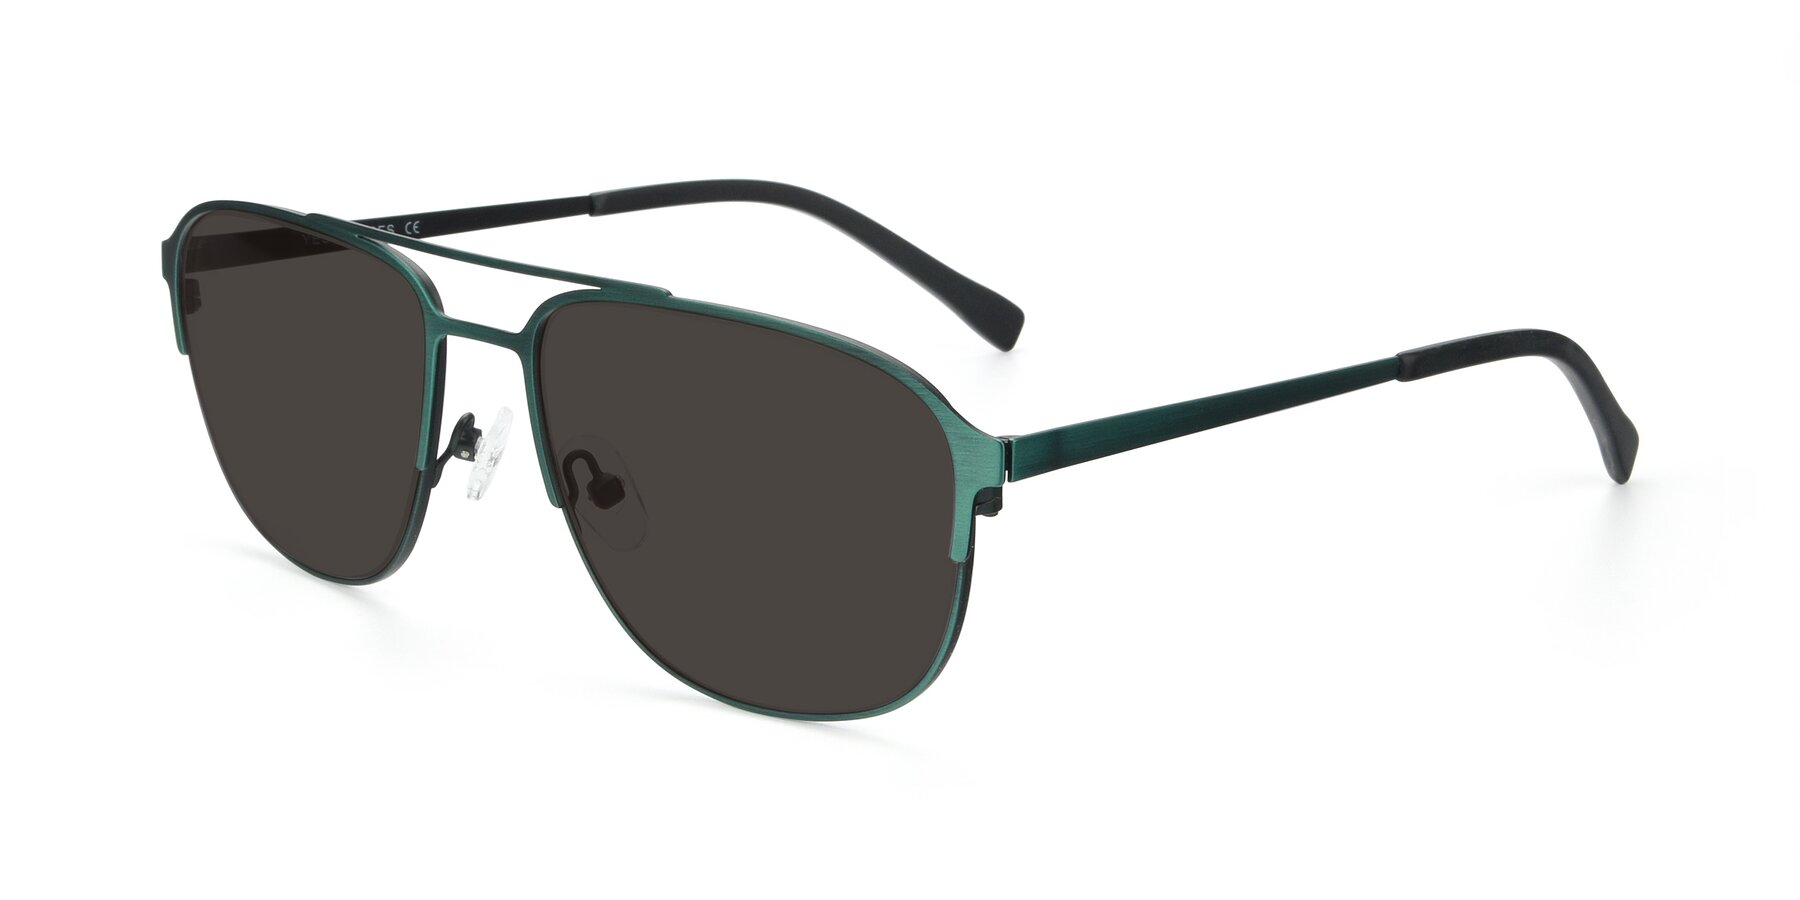 Angle of 9513 in Antique Green with Gray Tinted Lenses